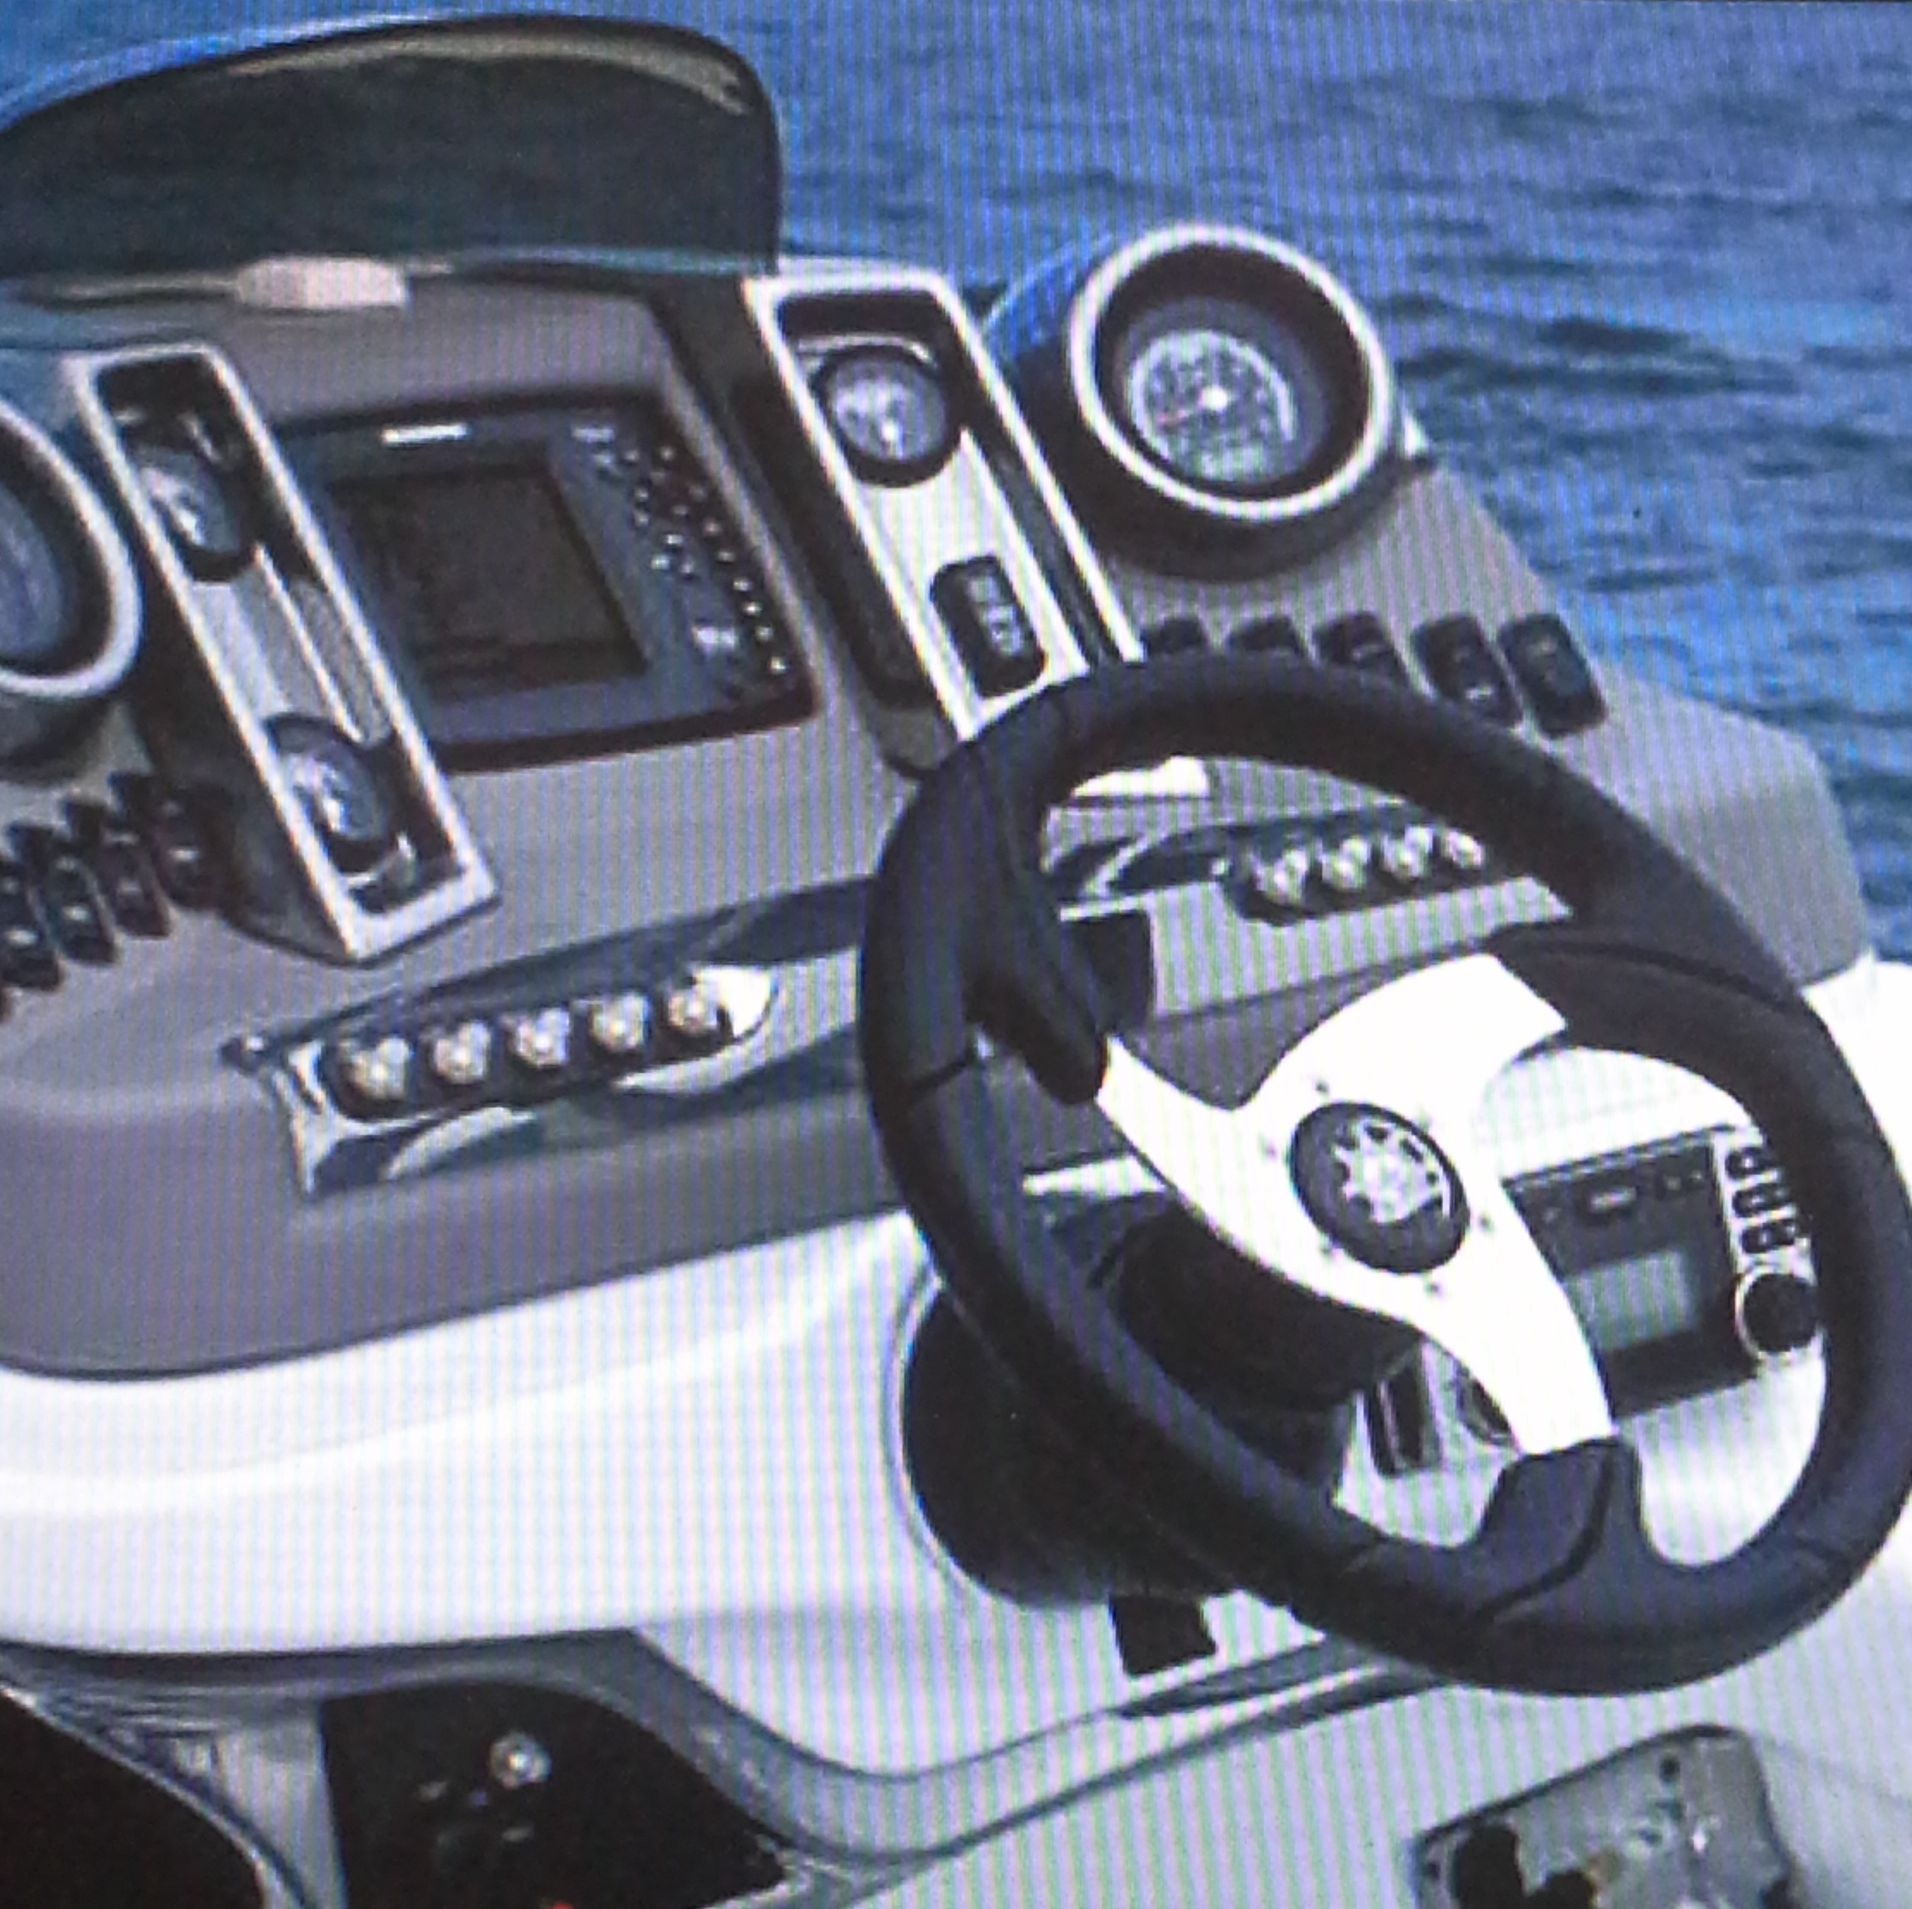 driving wheel of a boat